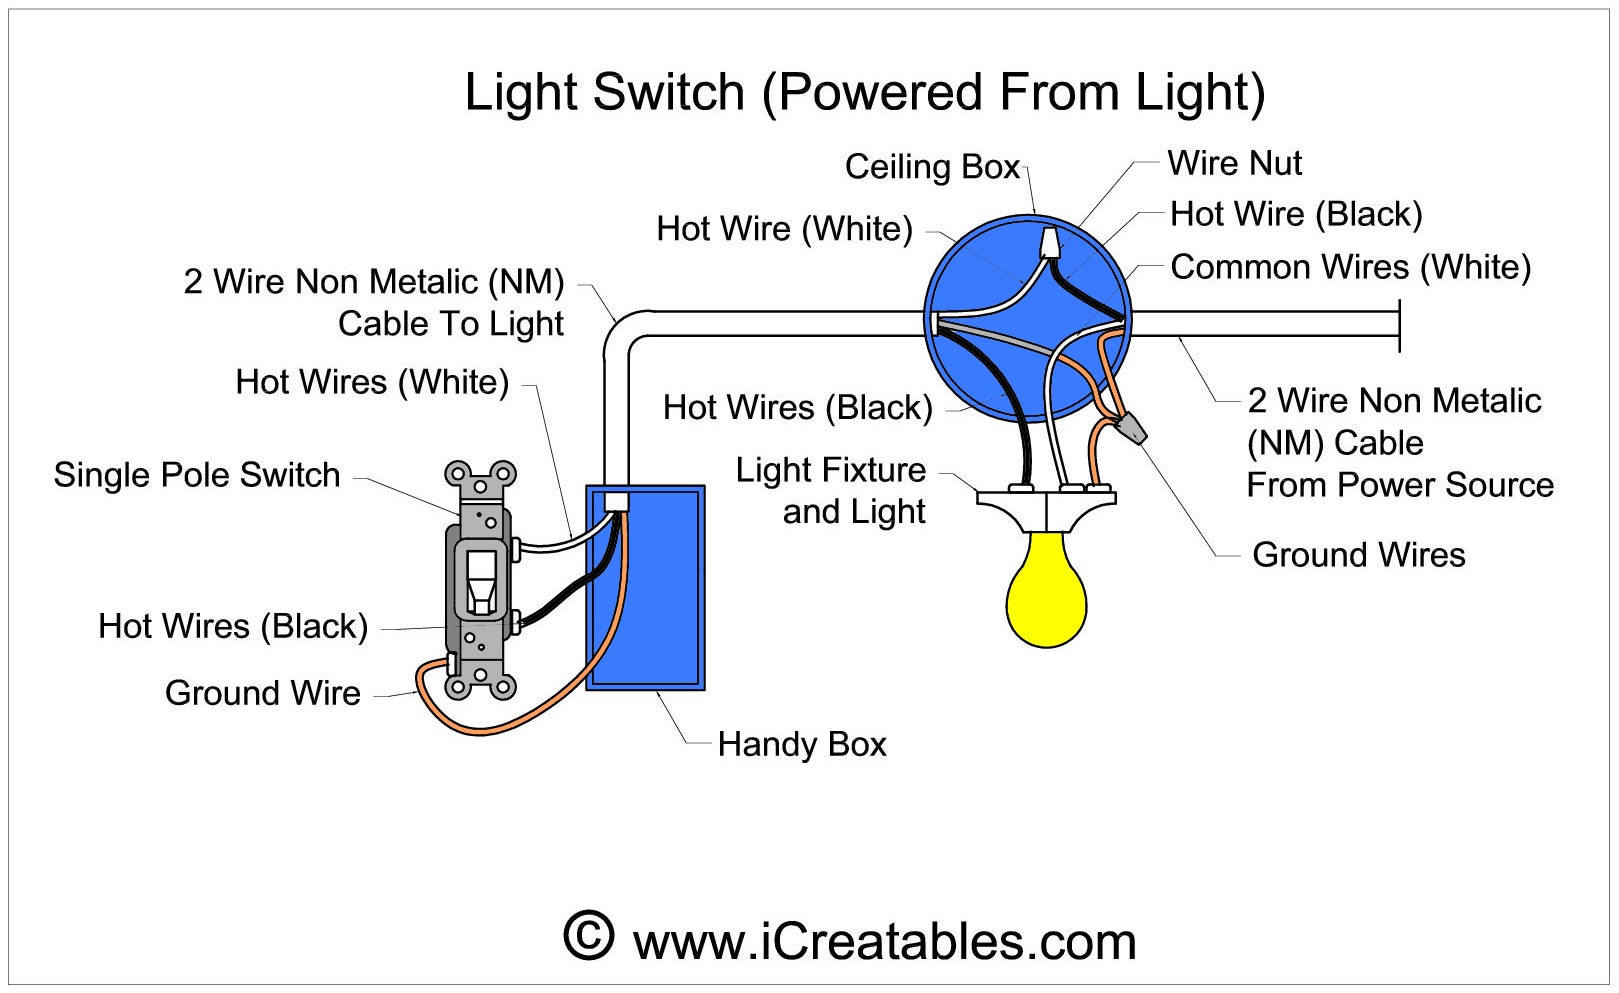 Light Switch Single Pole Wiring Diagram Power Coming From With Light. can i  power a single pole switch from the end of a 3 way. single pole switch  wiring methods electrician101. lightA.2002-acura-tl-radio.info. All Rights Reserved.